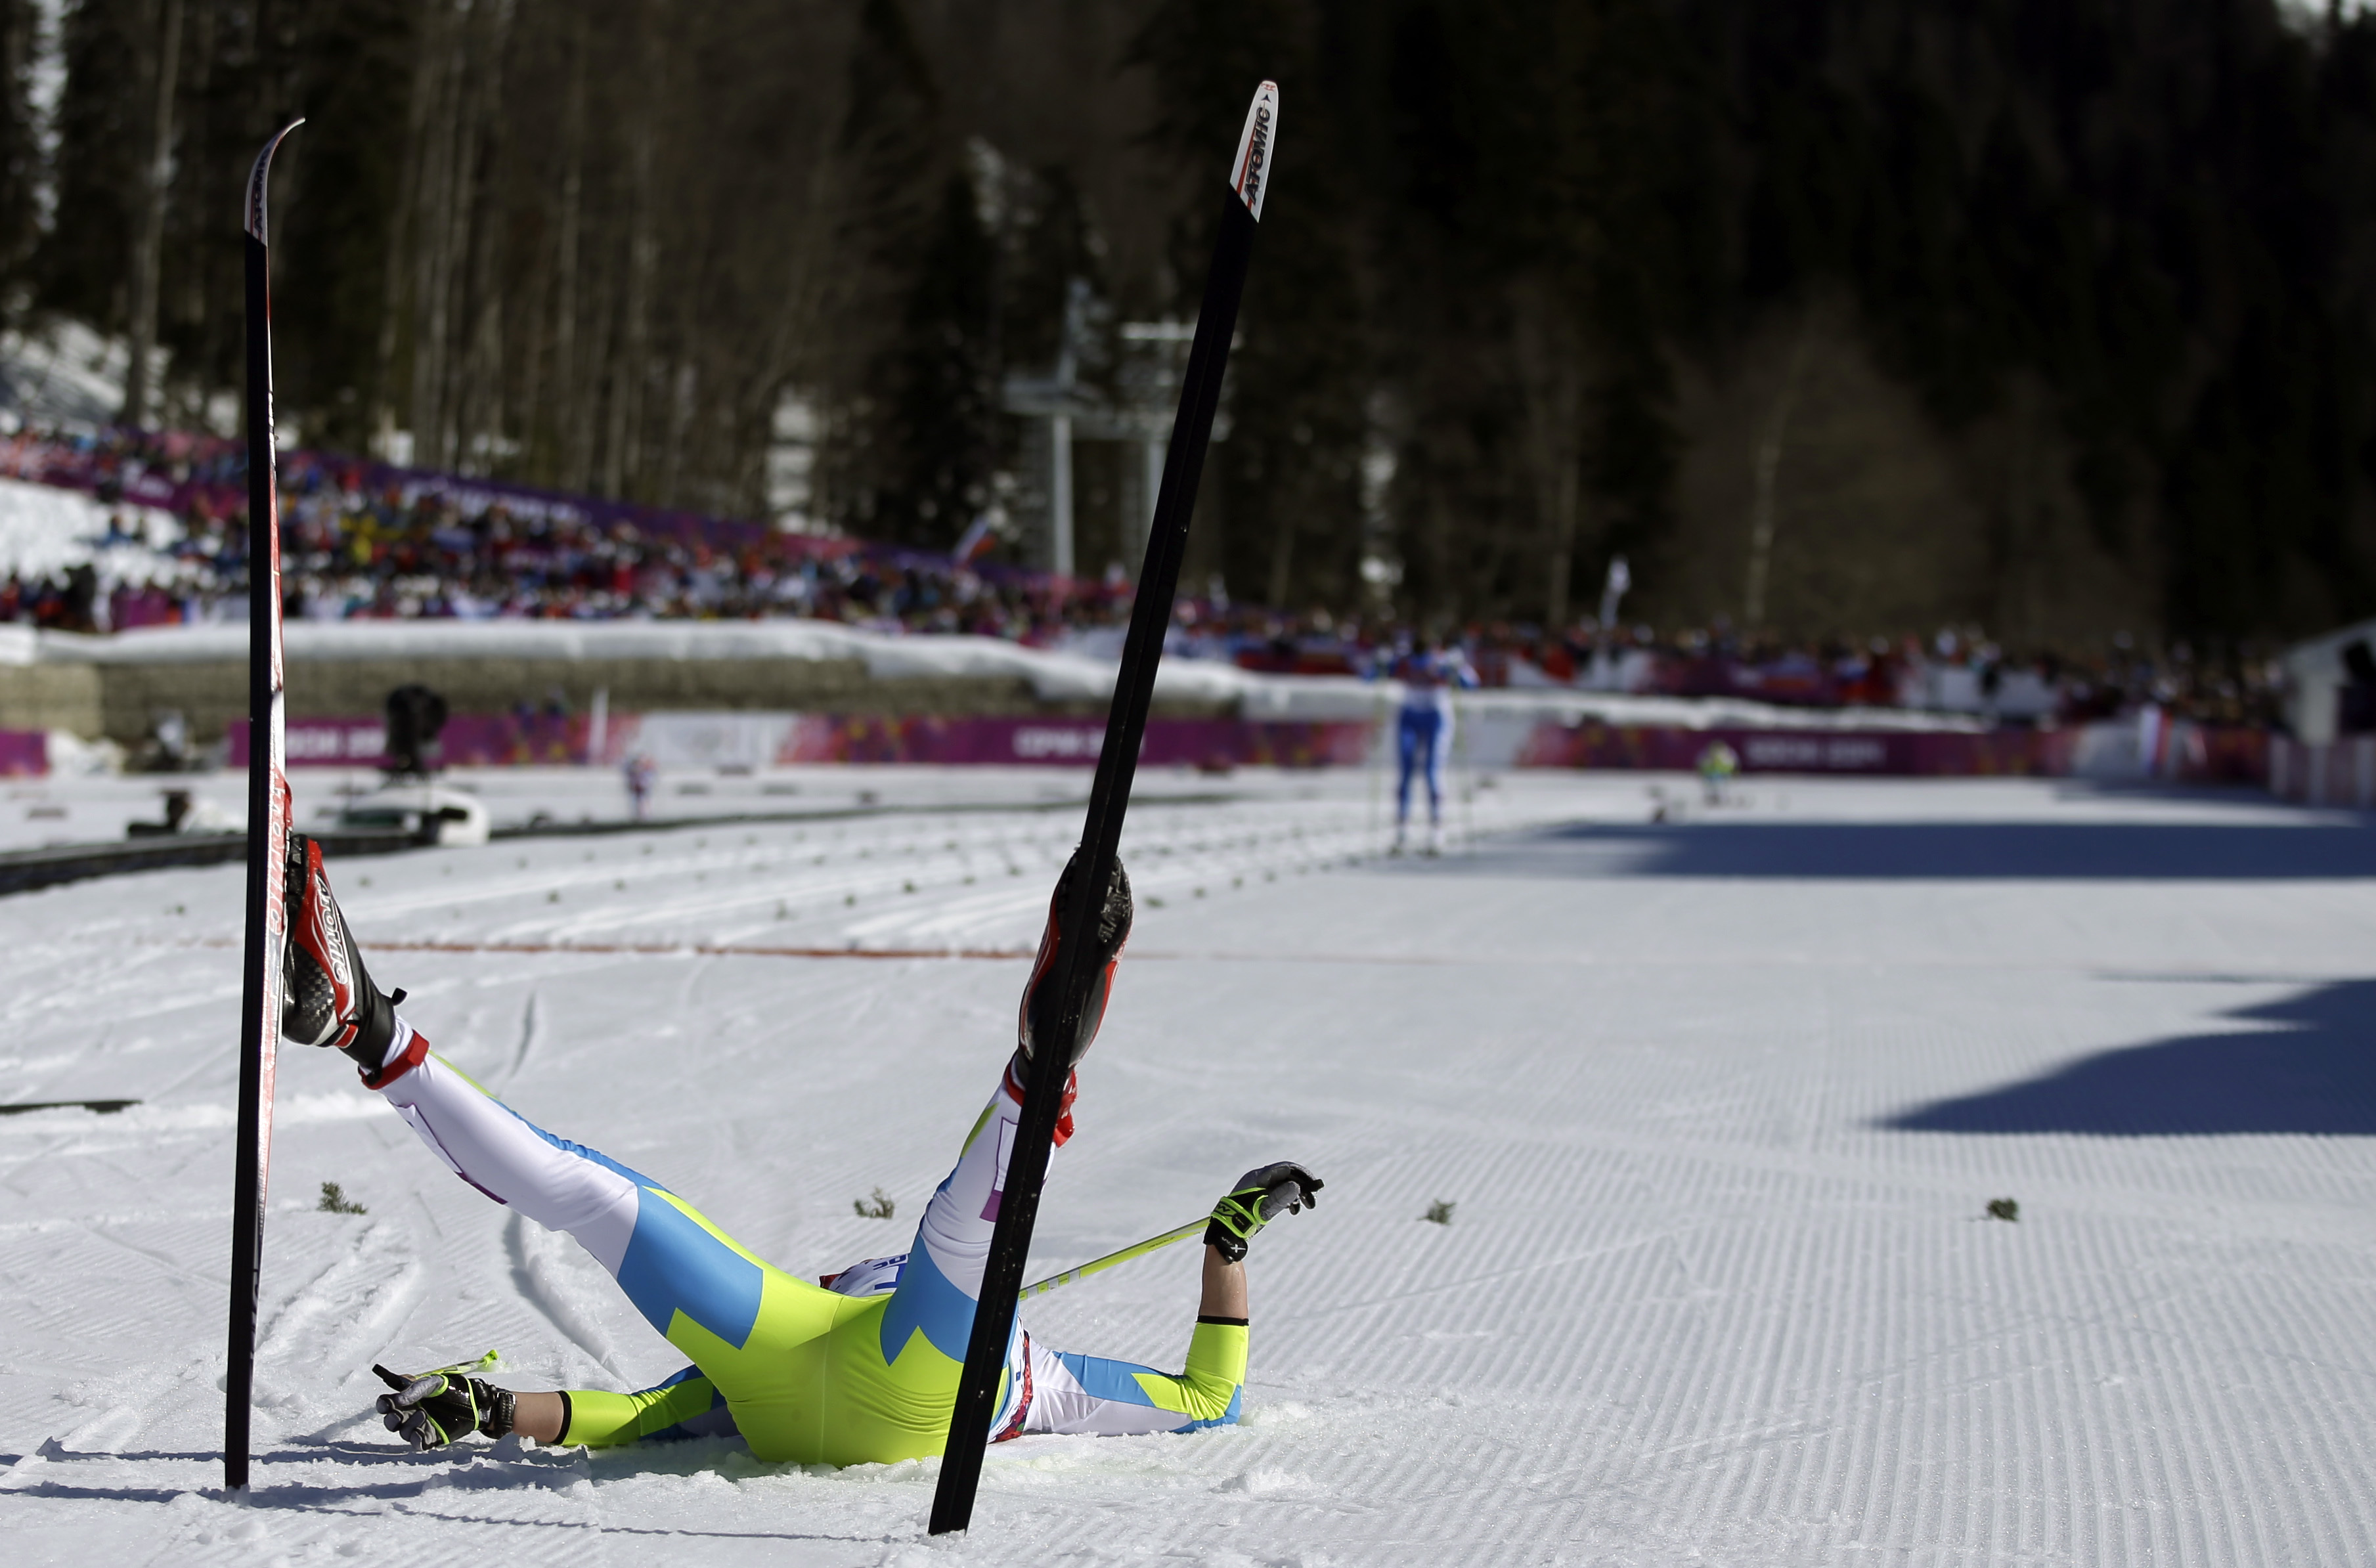 Slovenia's Barbara Jezersek lies on the snow after completing the women's 10K classical-style cross-country race.